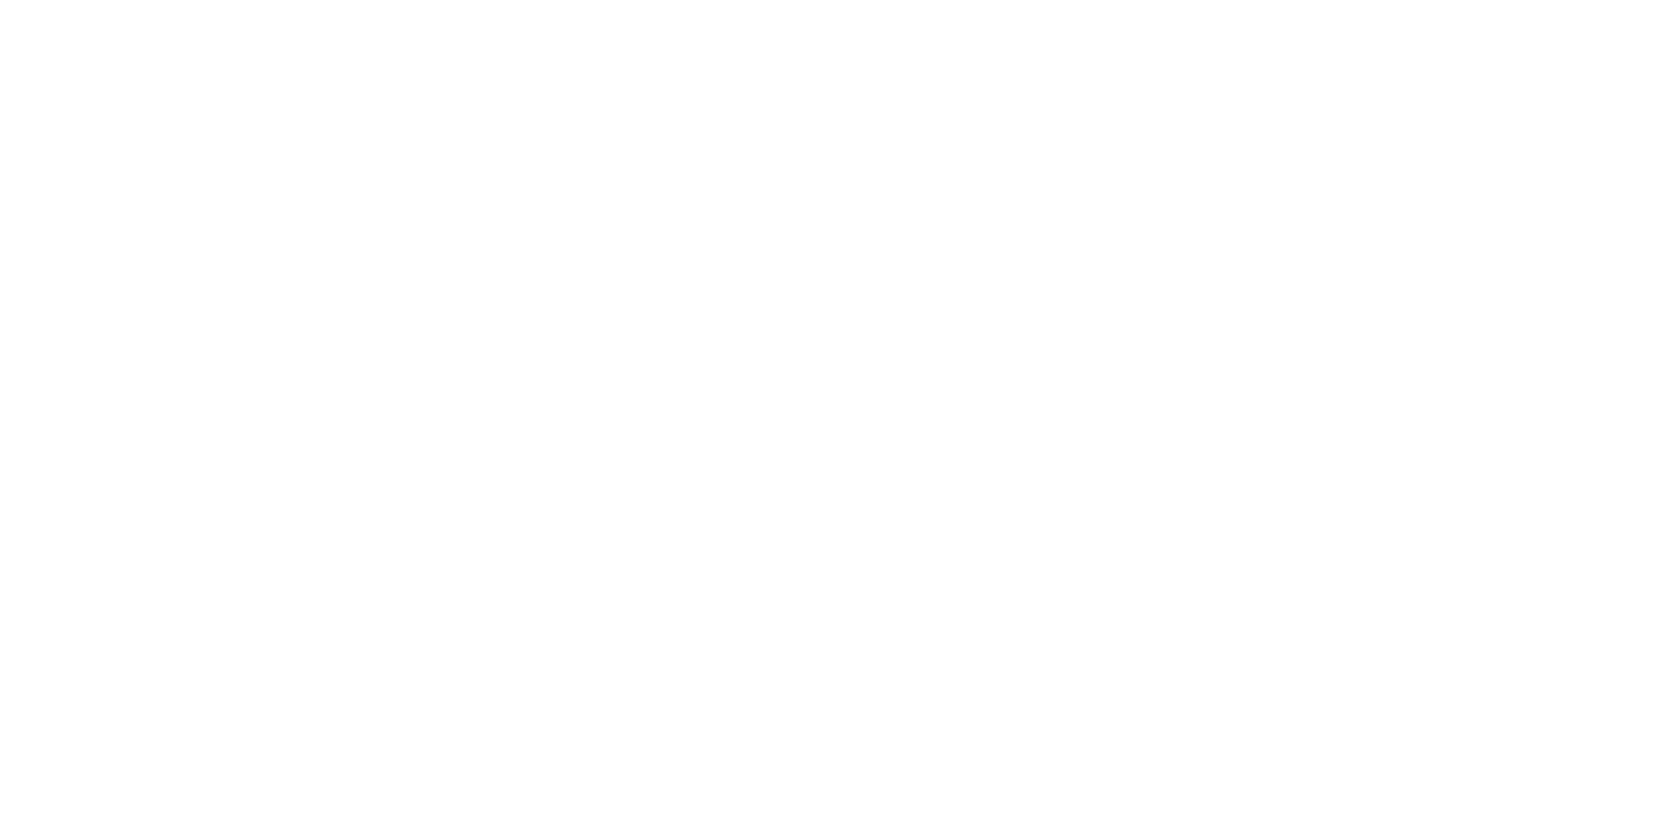 Digicert - Security7 Networks